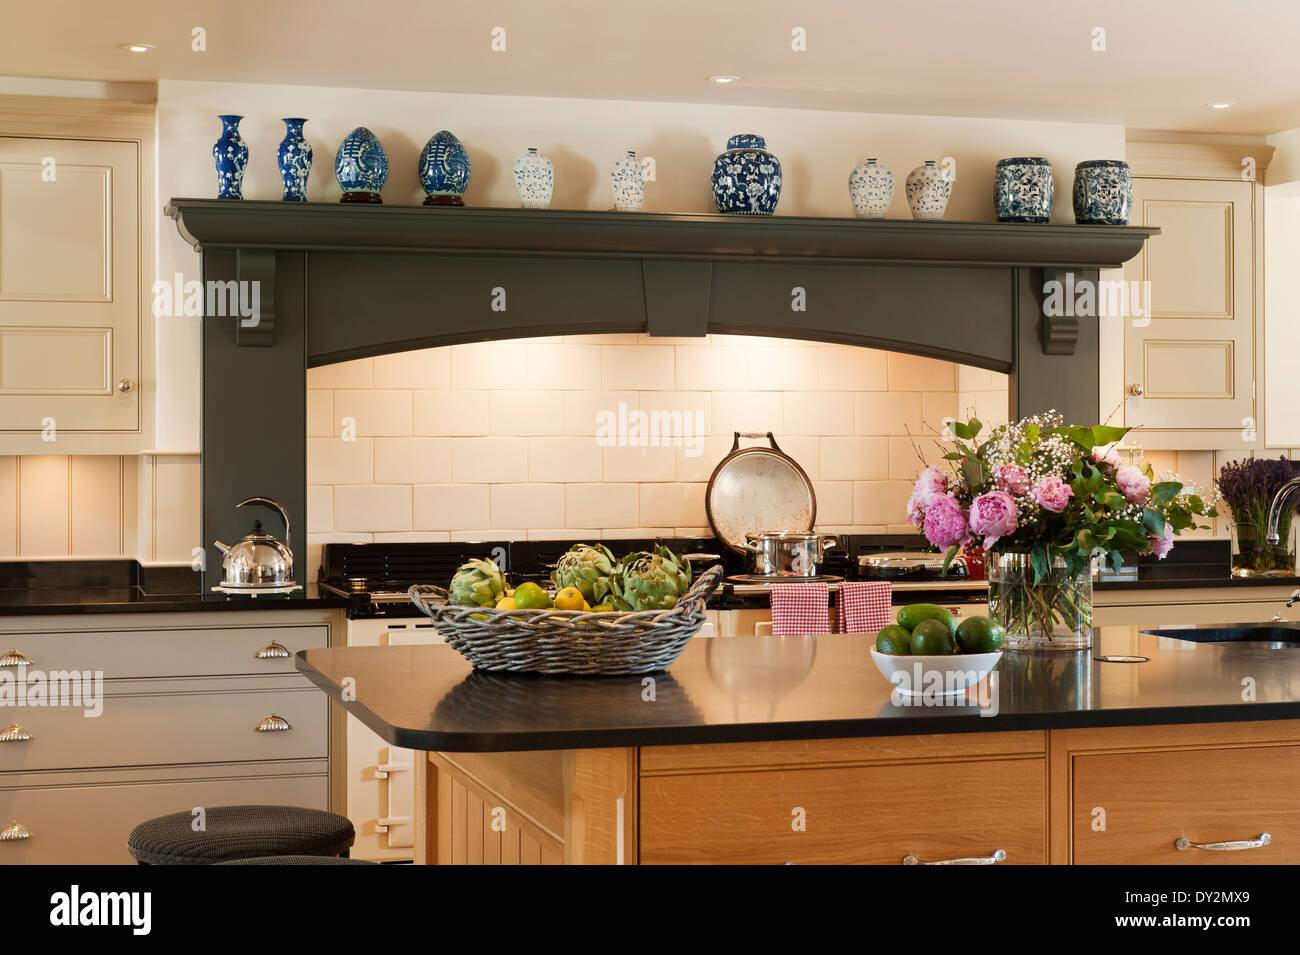 cut granite stockfotos cut granite bilder alamy. Black Bedroom Furniture Sets. Home Design Ideas